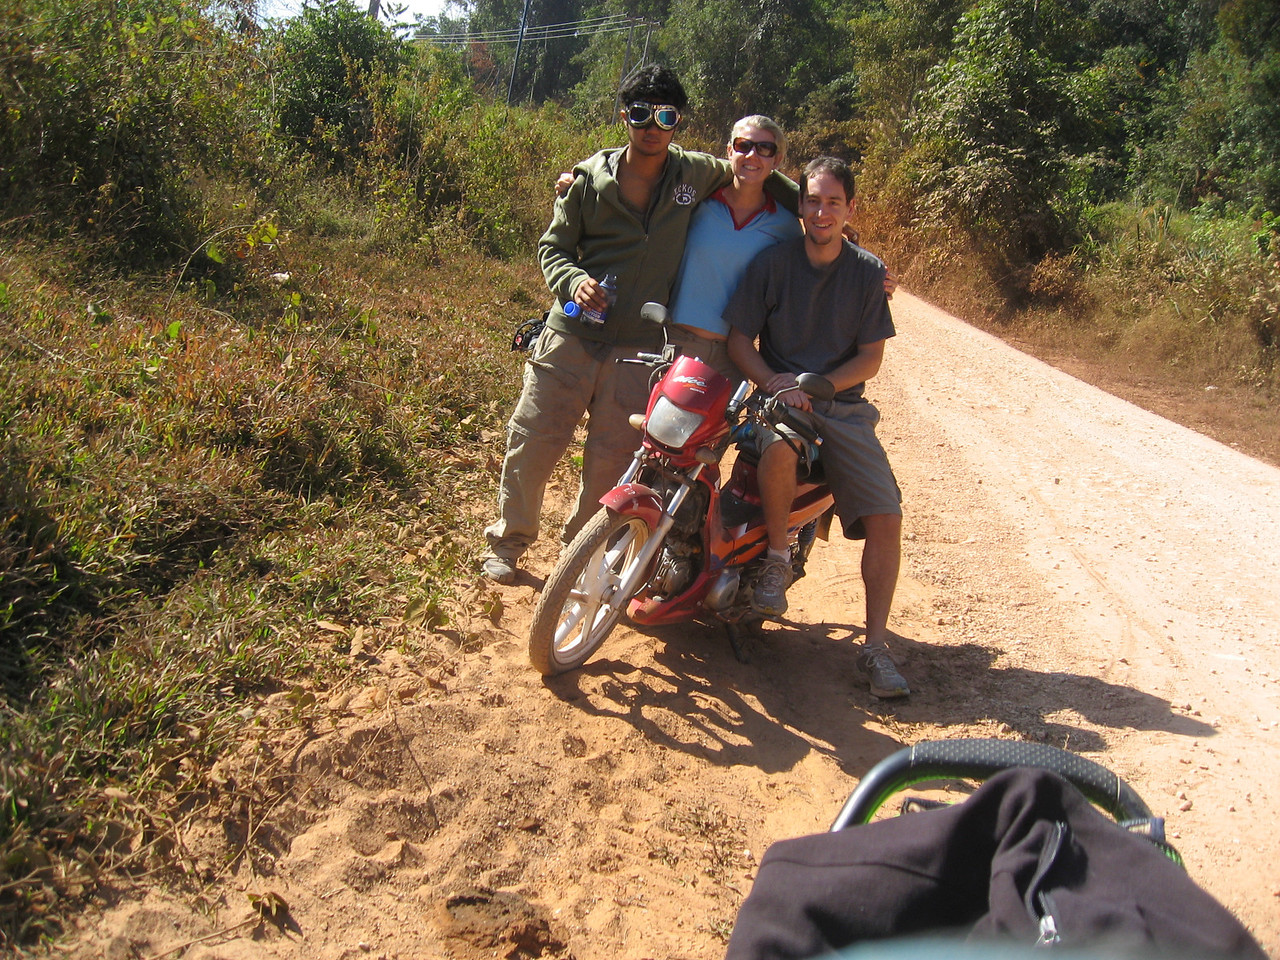 2009 - The year of our honeymoon. For thanxgiving this year, we were in Lao on our newly purchased motorbikes.